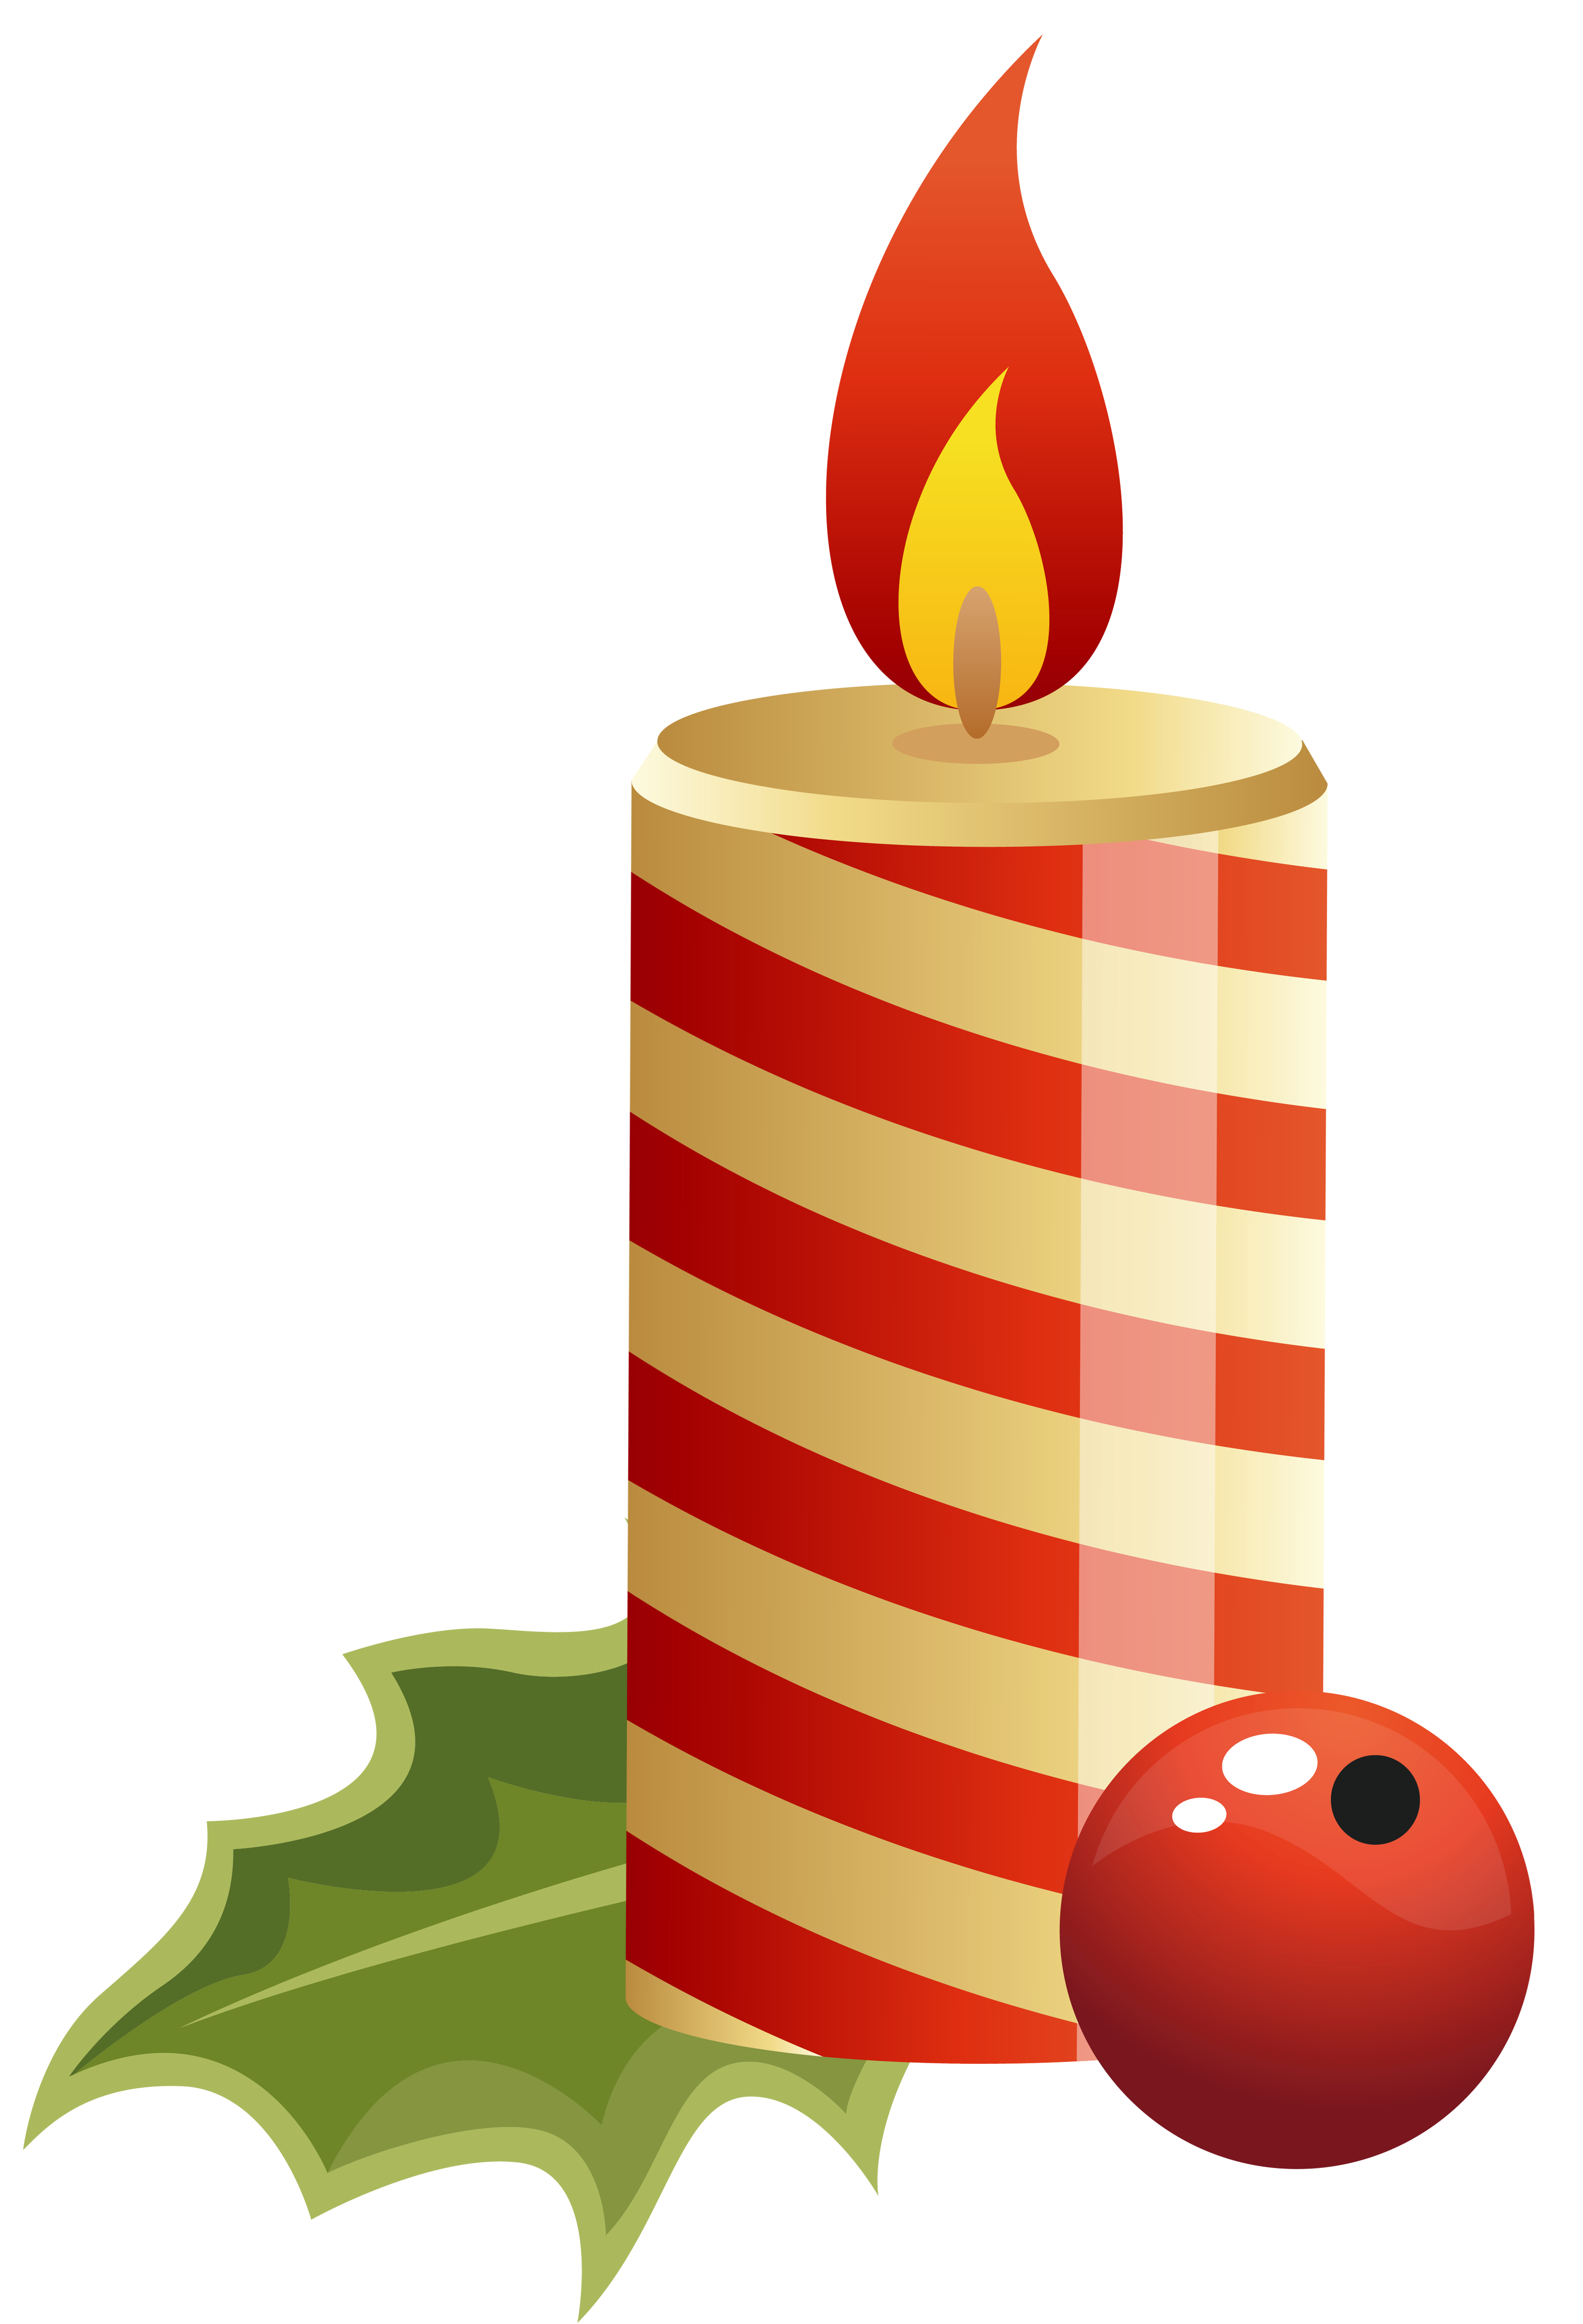 Christmas birthday clipart clip art freeuse library Candle Clipart at GetDrawings.com | Free for personal use Candle ... clip art freeuse library